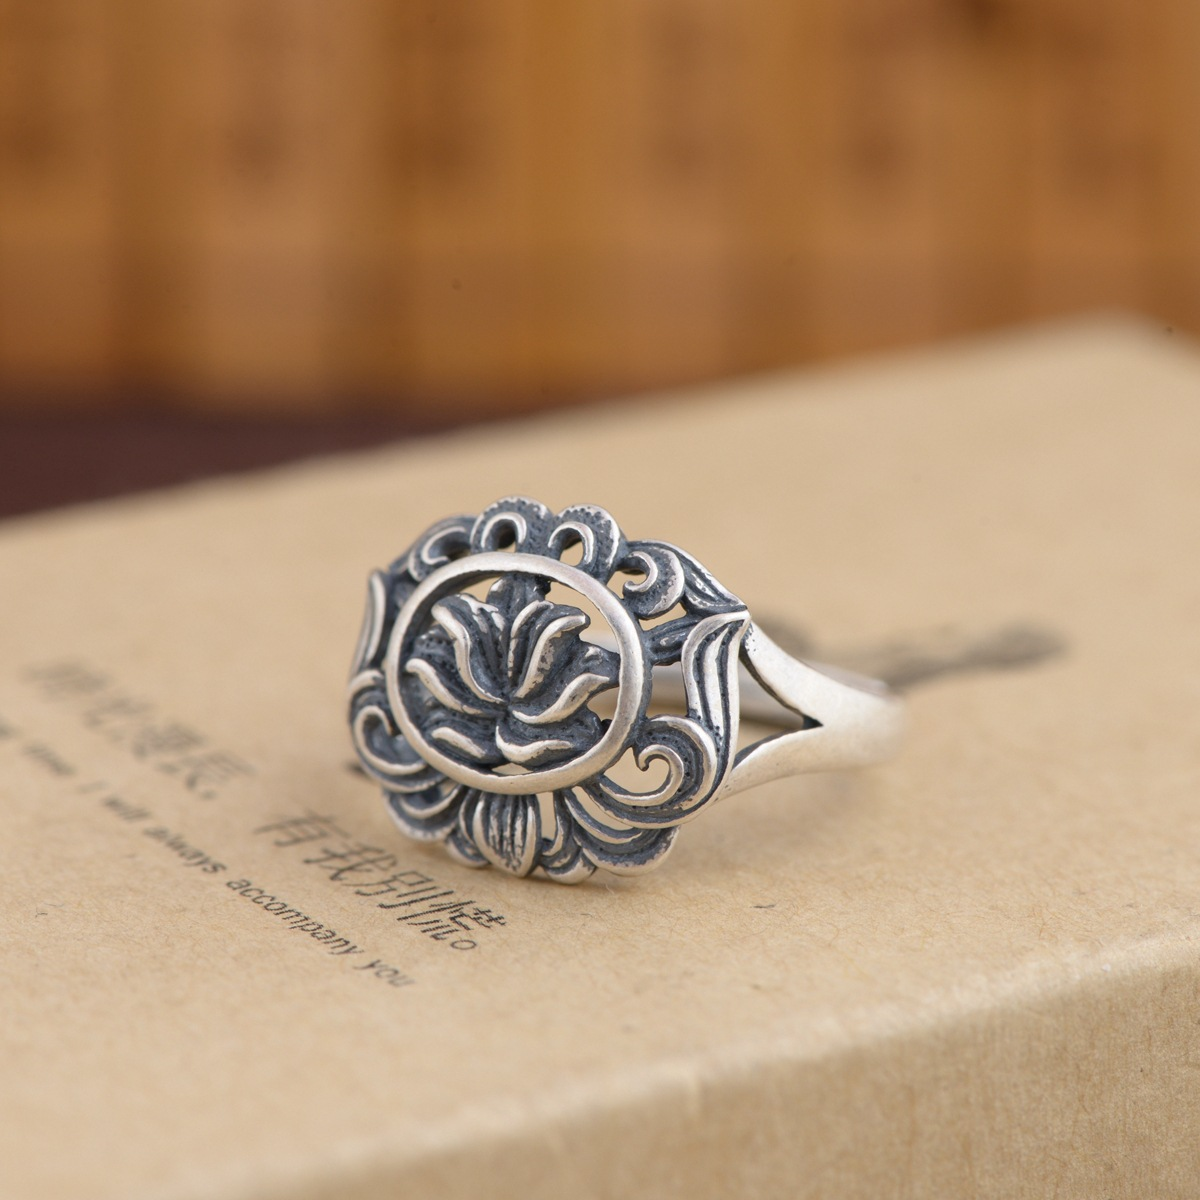 silver ring S925 sterling silver antique style female flowers rich matte New Gift Ring